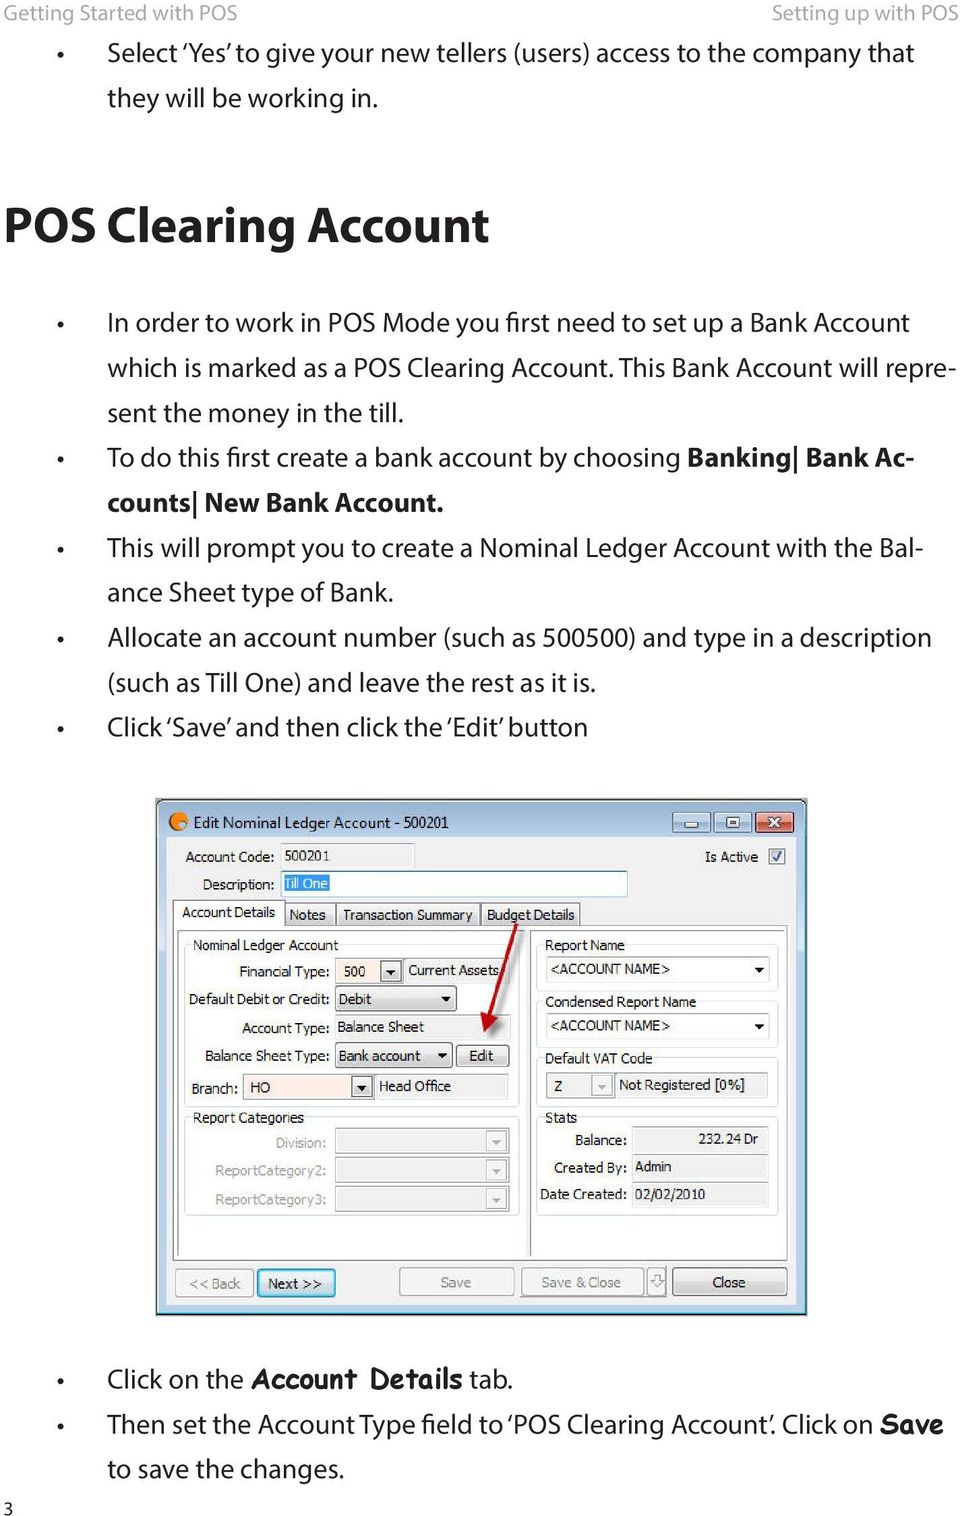 To do this first create a bank account by choosing Banking Bank Accounts New Bank Account. This will prompt you to create a Nominal Ledger Account with the Balance Sheet type of Bank.